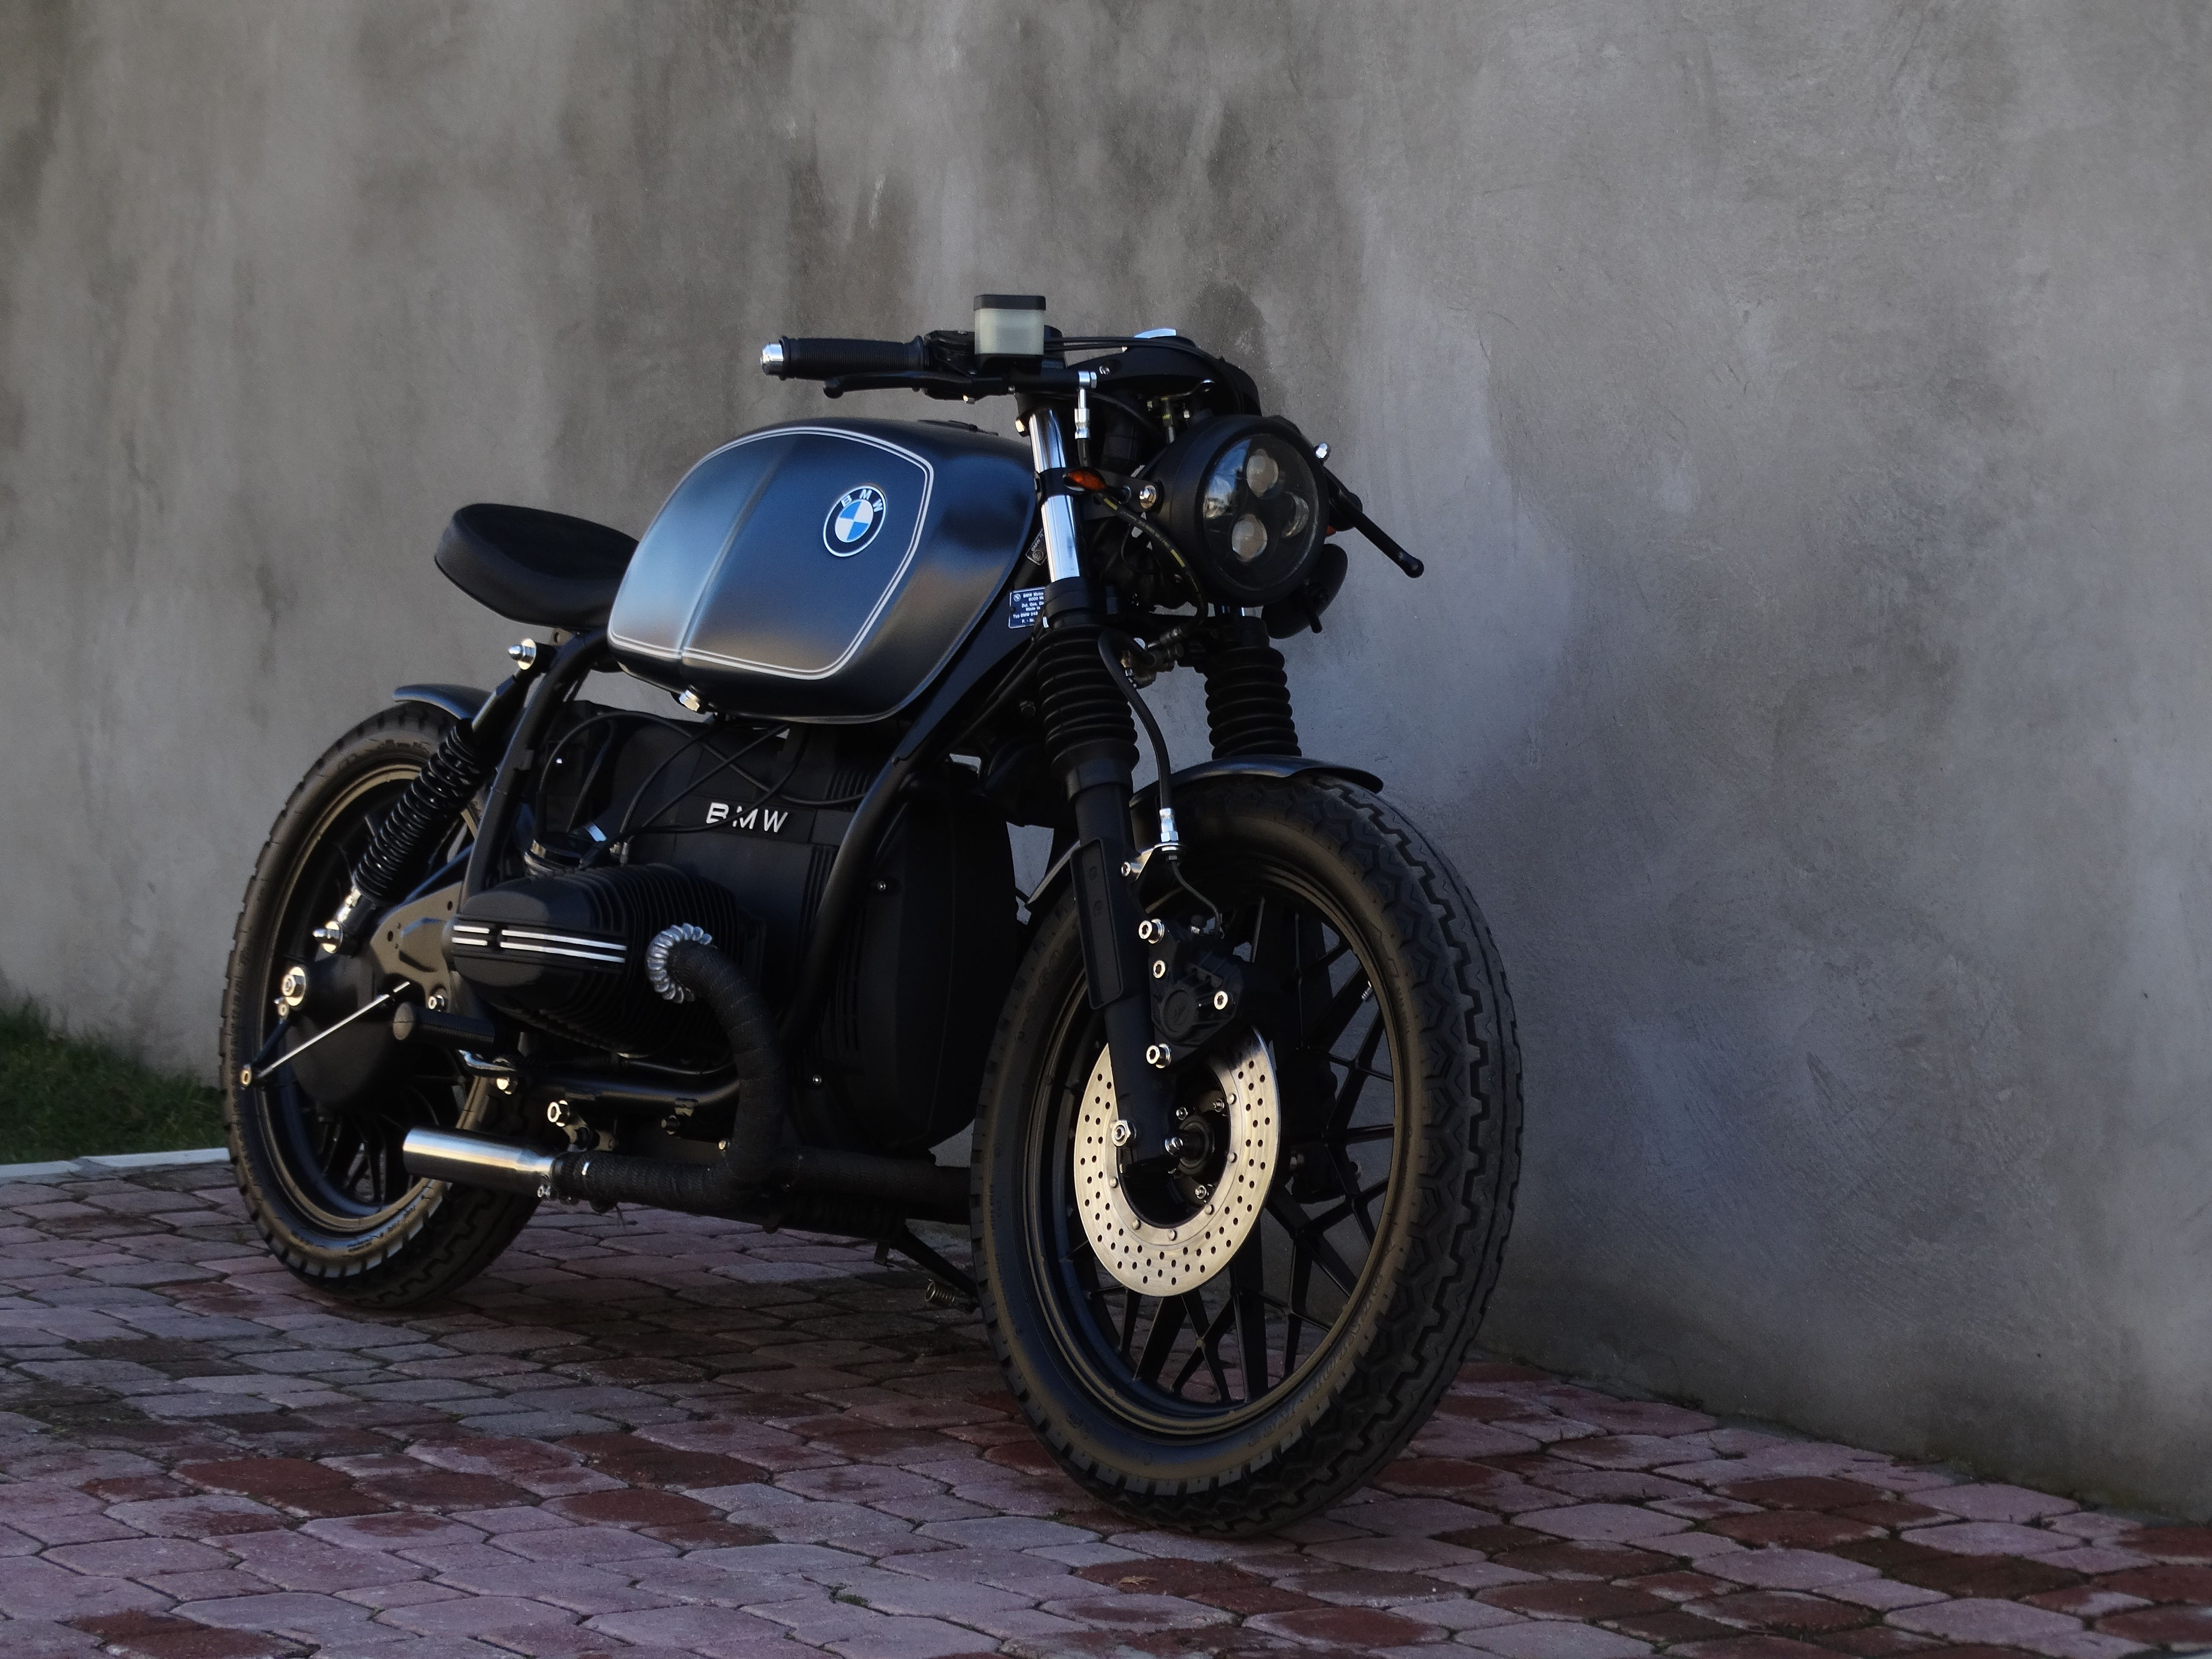 Bmw R 45 Artwork By Garage 12 Bmw R 45 Cafe Racer Moto Bike Bmw